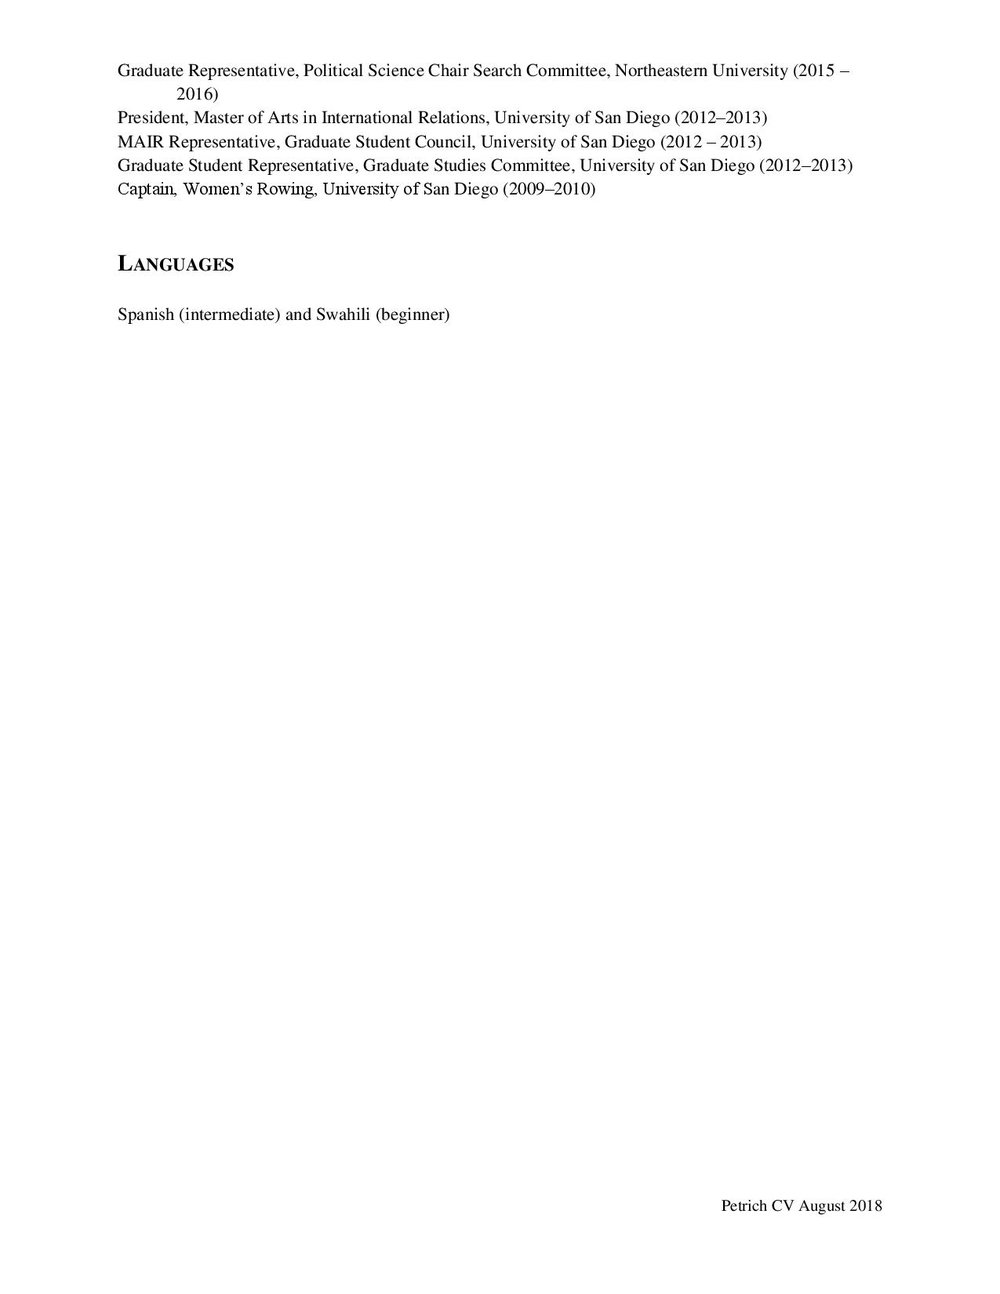 Website Resume-page-006.jpg